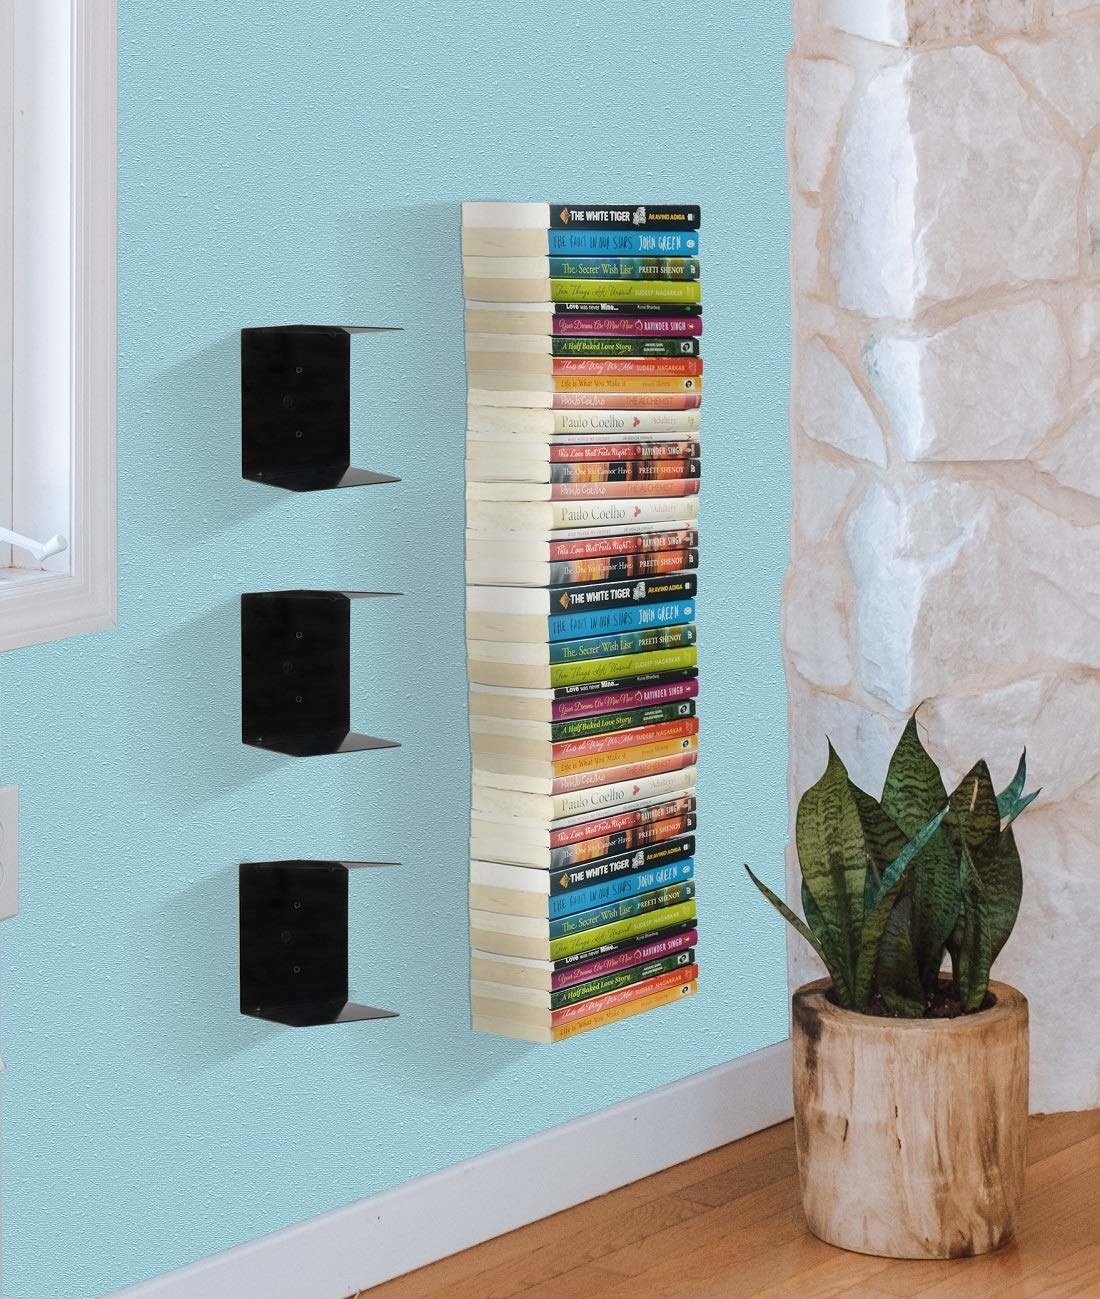 The metal shelves in black, pictured with and without the books.